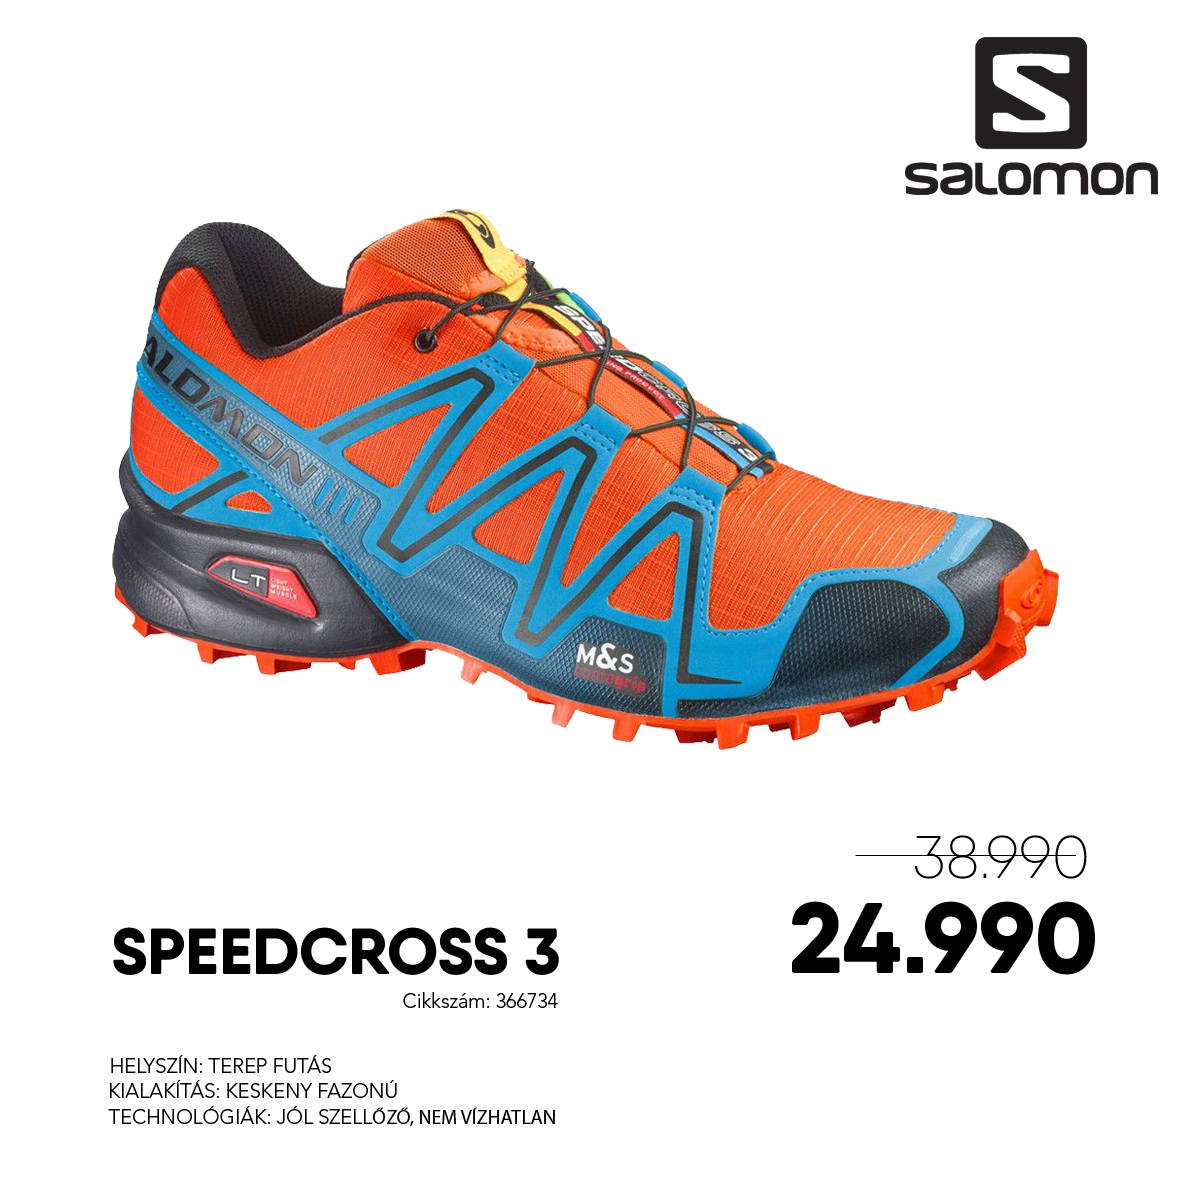 Salomon Terepfutó Cipő SPEEDCROSS 3 -  366734-George_Orange-X-BL_BK